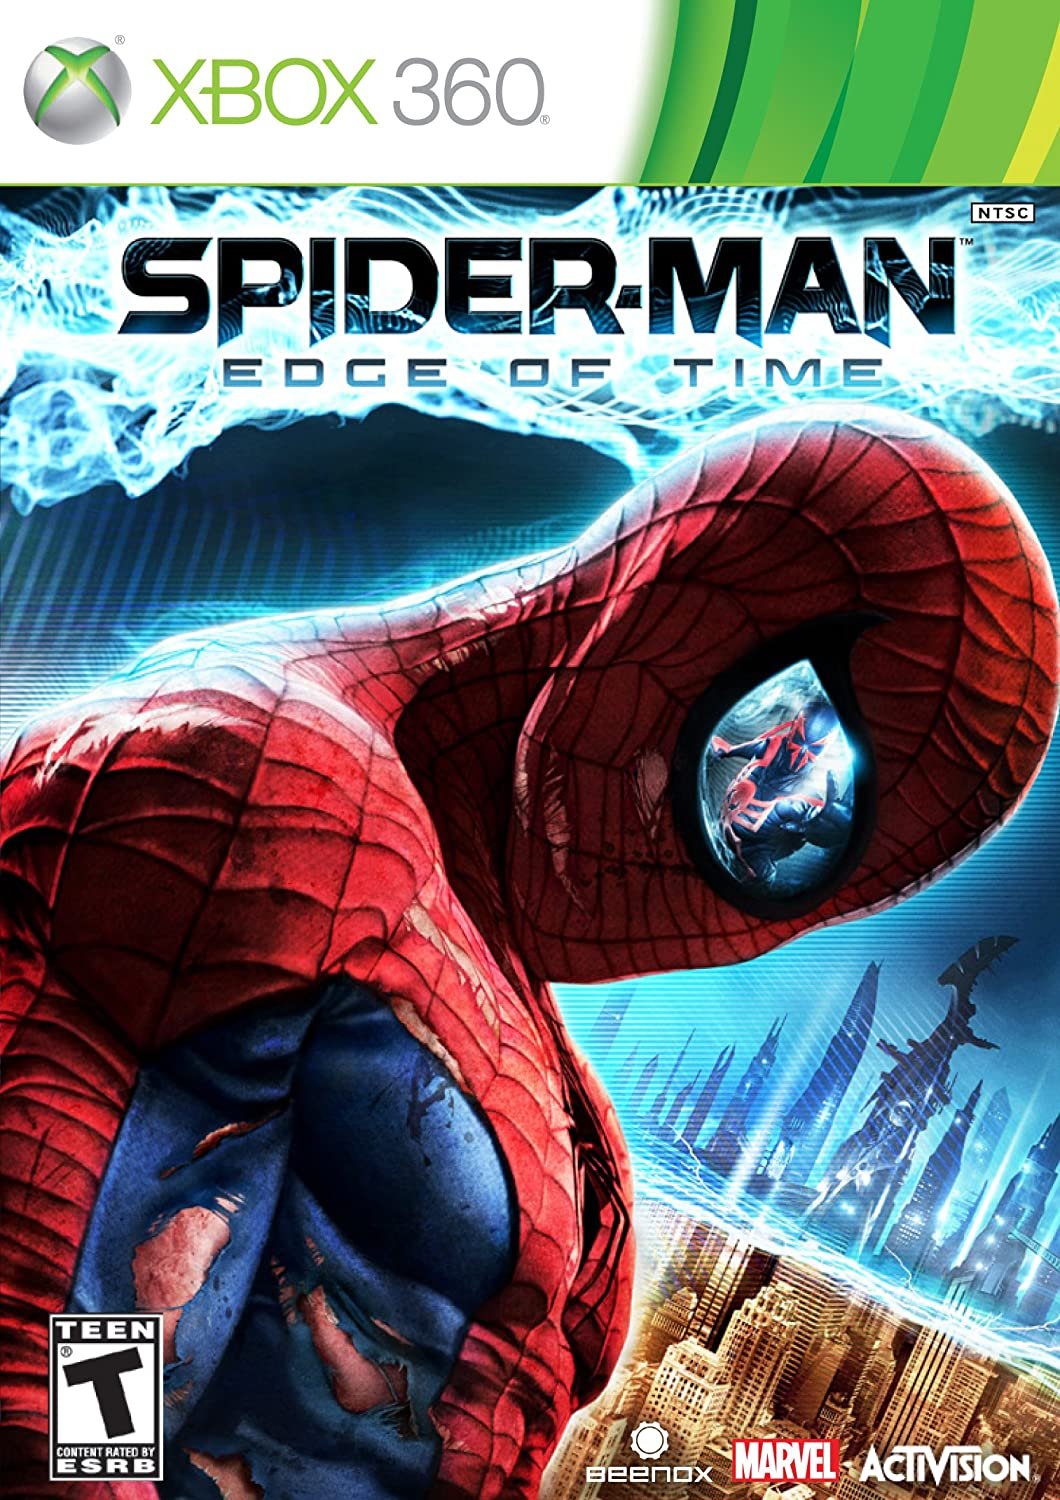 Spider-man: The Edge All stores are sold of - Xbox 360 Super special price Time